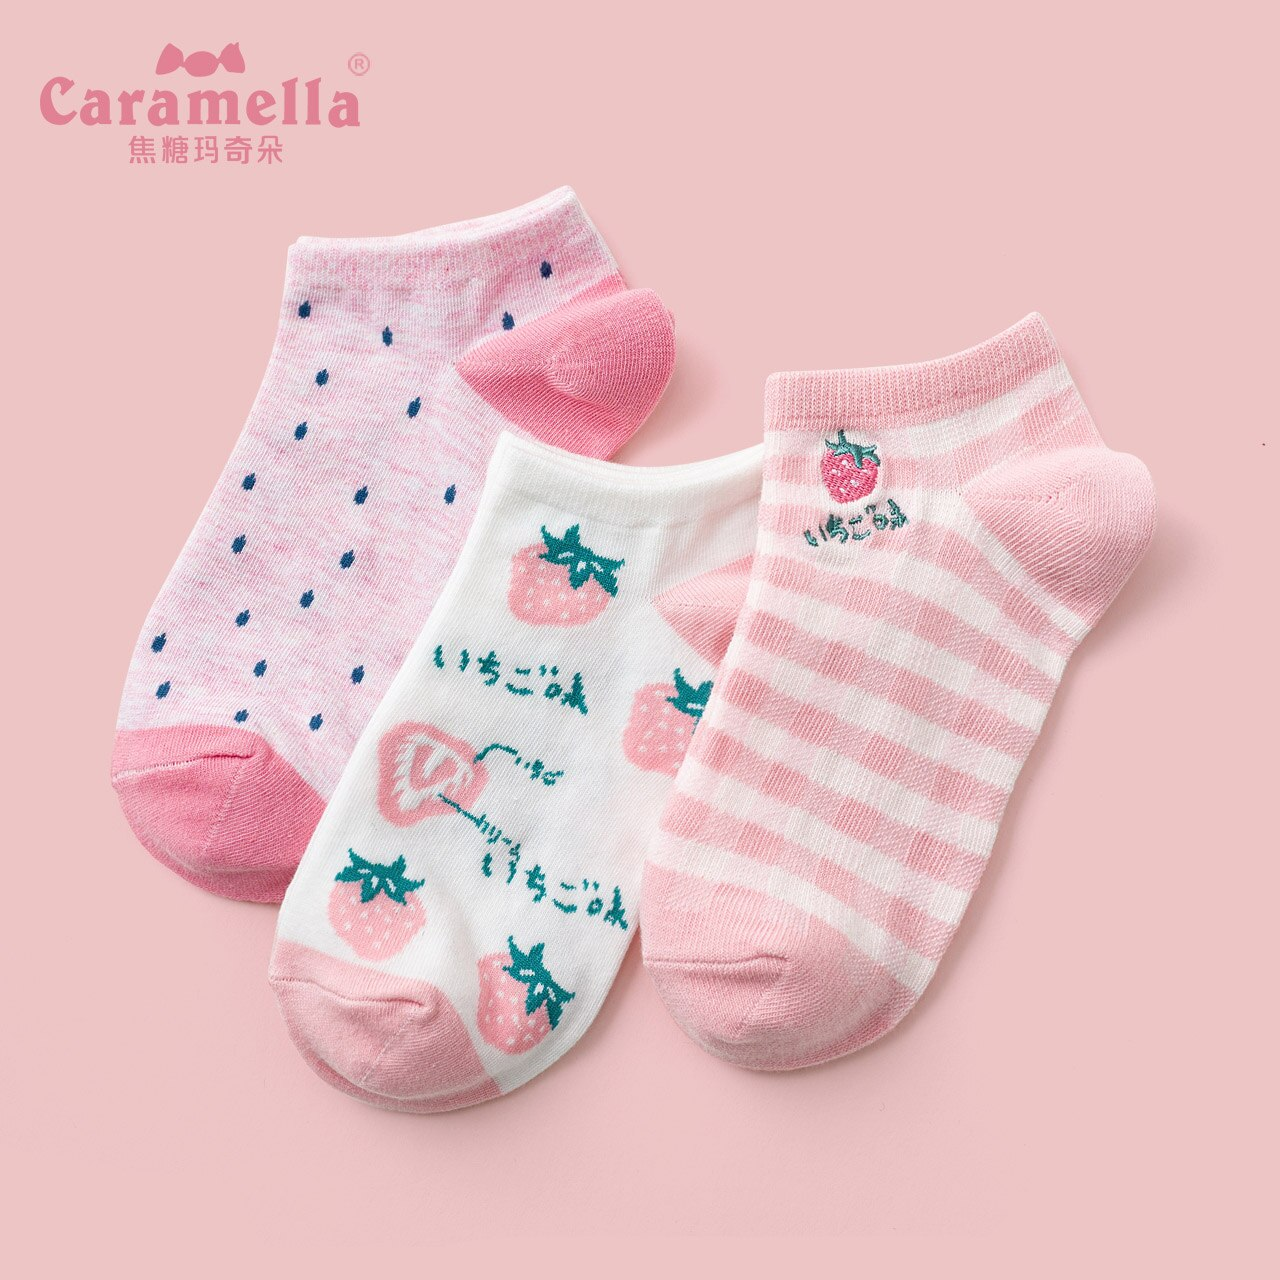 Caramella Socks for Women Ins Popular Net Red Spring and Autumn Thin Cute Japanese Style Non-Slip Sp